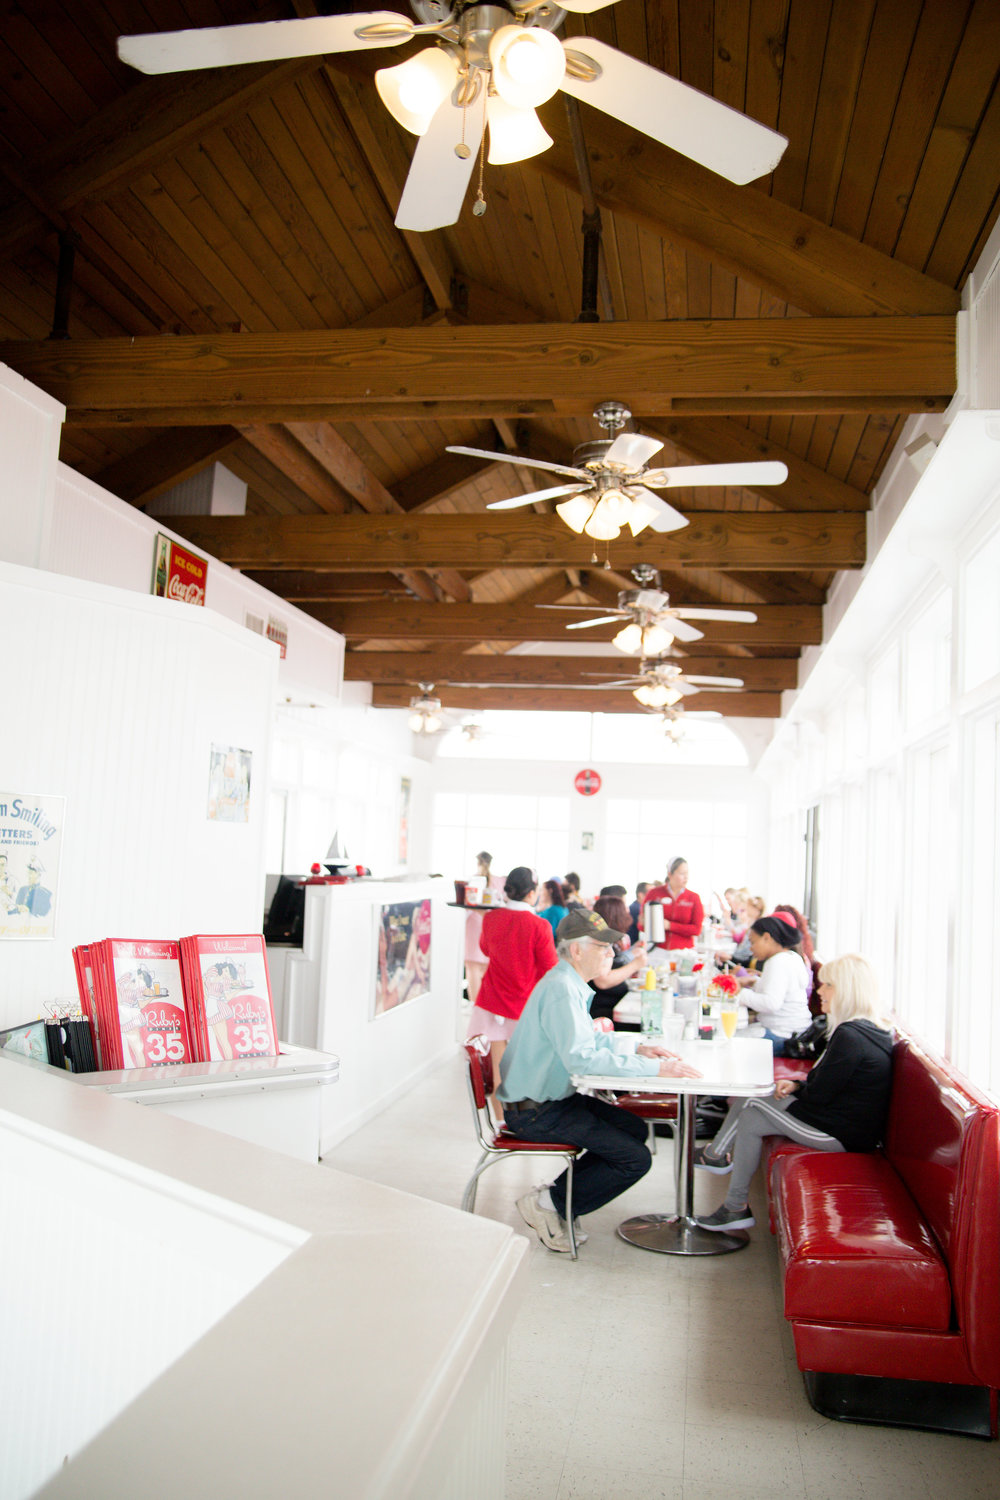 White and red classic diner interior with wood beam ceilings at ruby's on the pier in Oceanside California